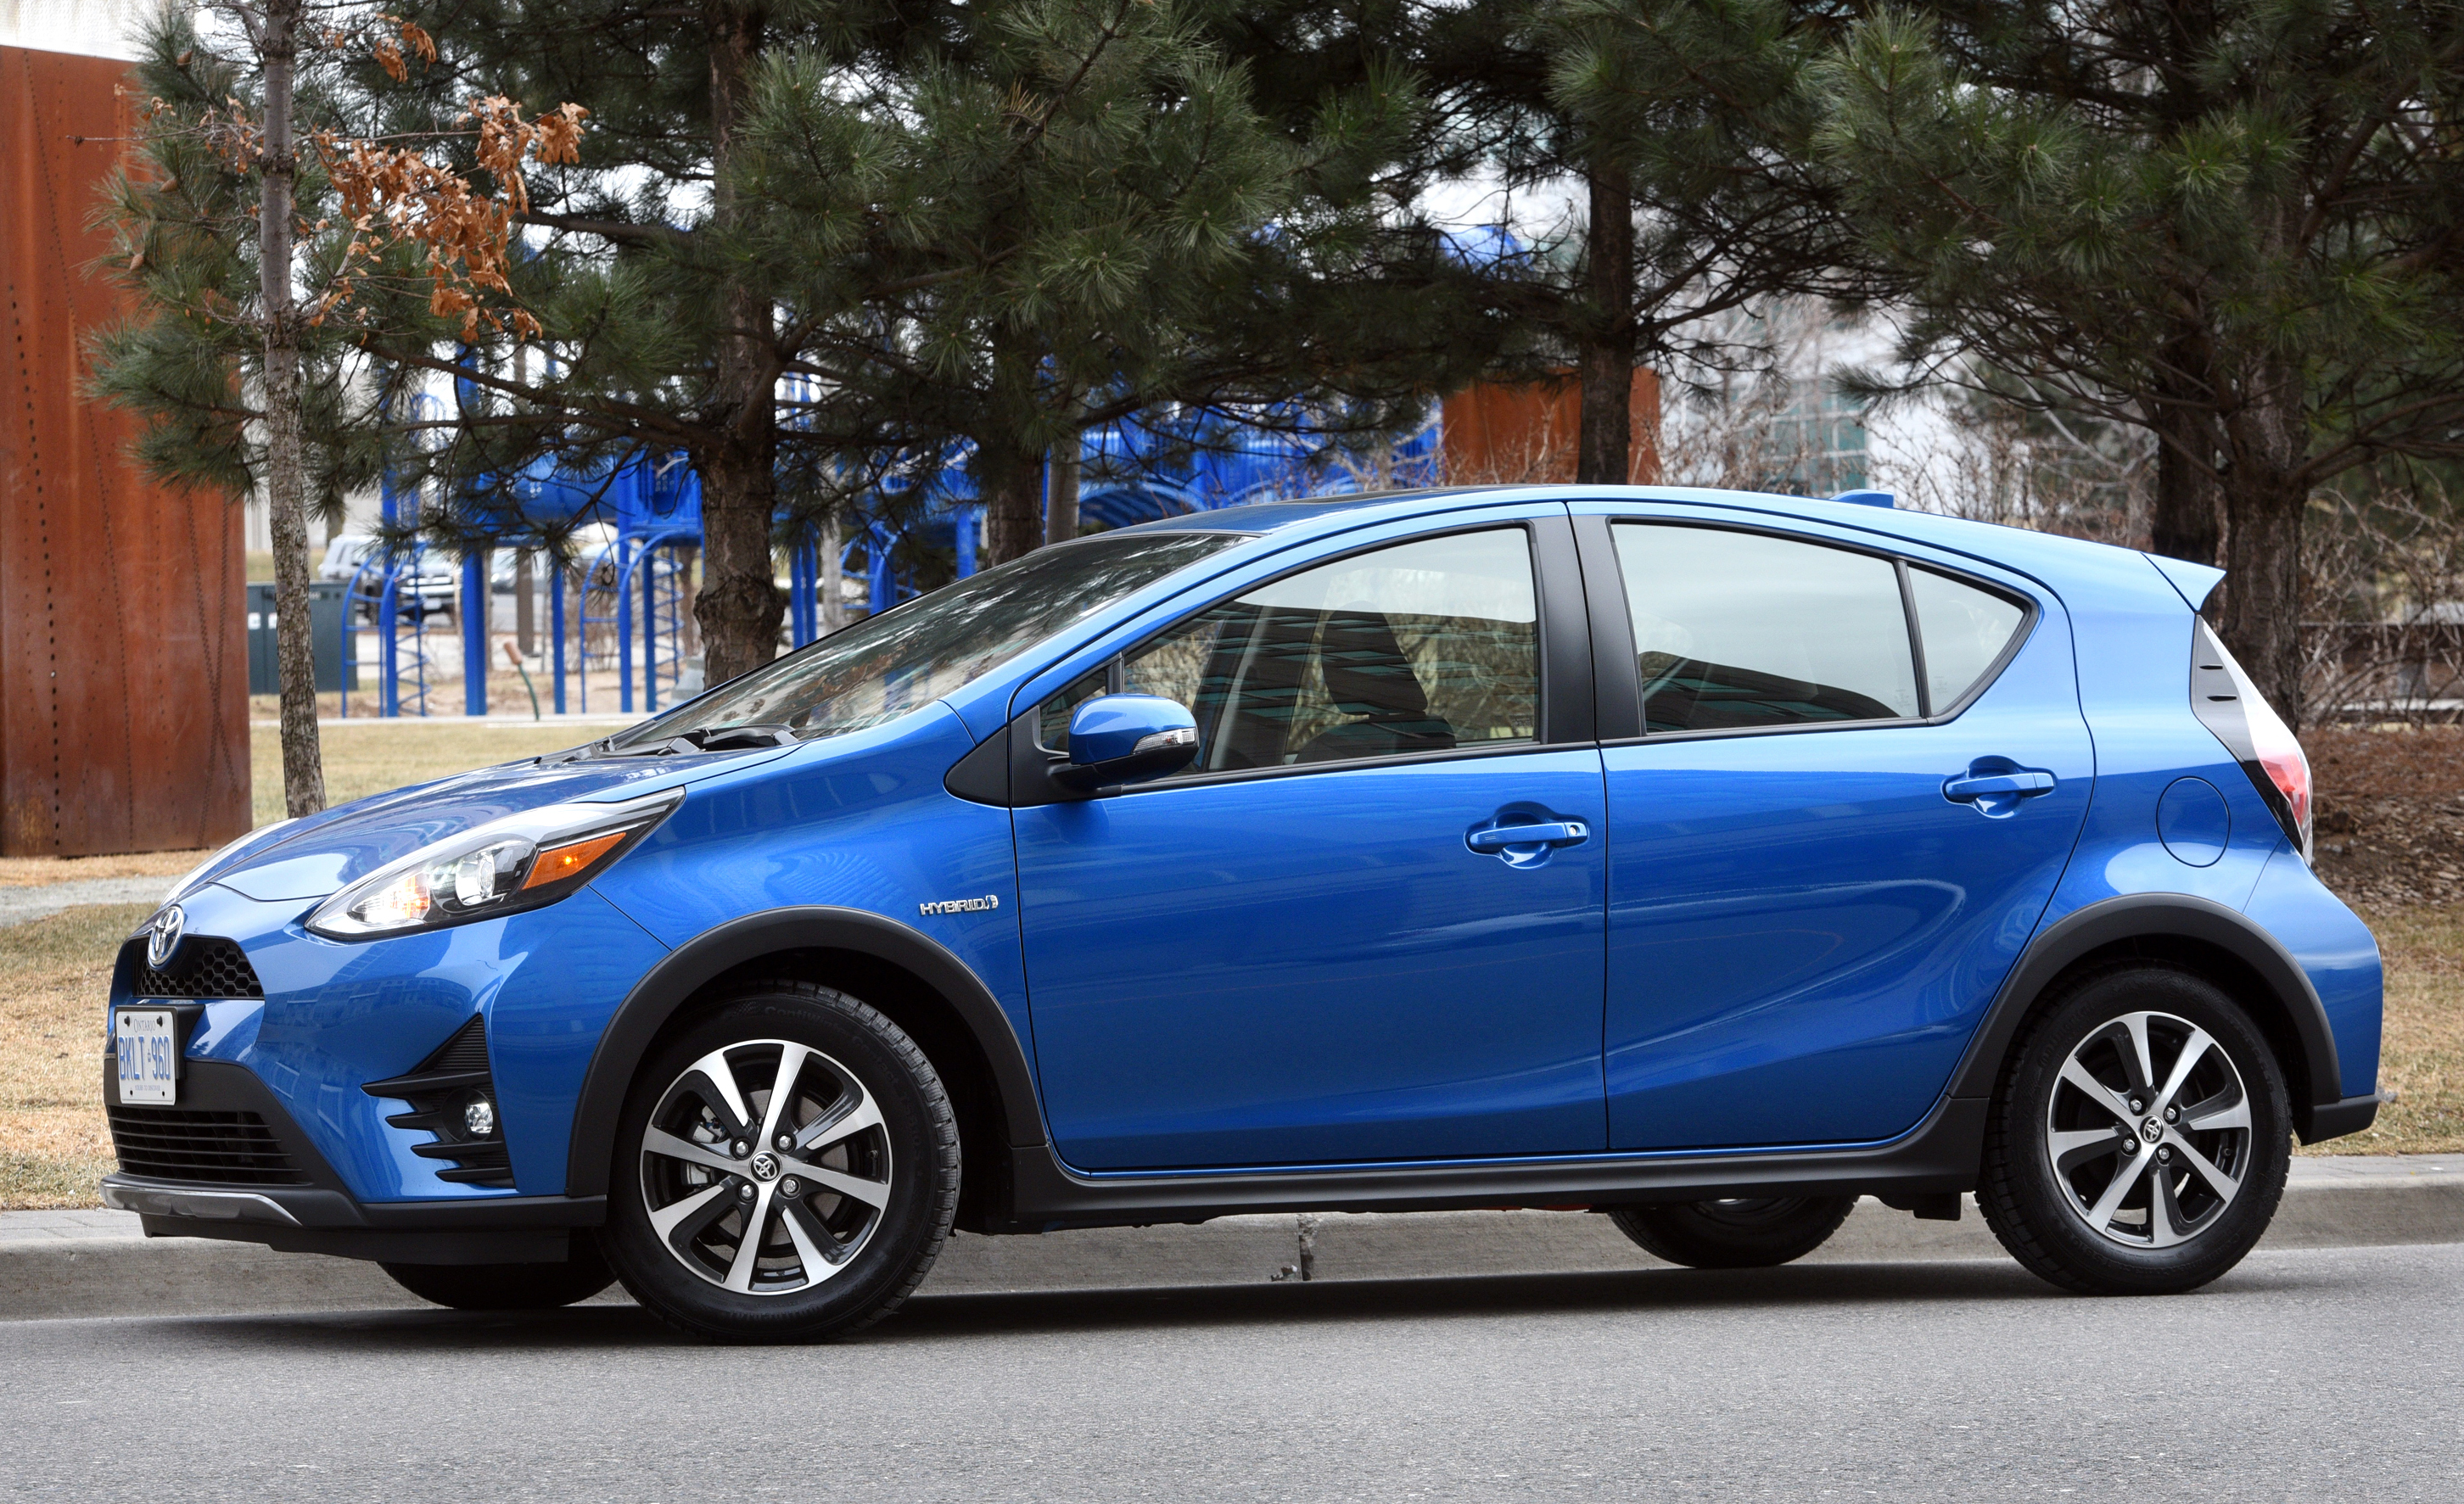 Review: 2018 Toyota Prius c Technology